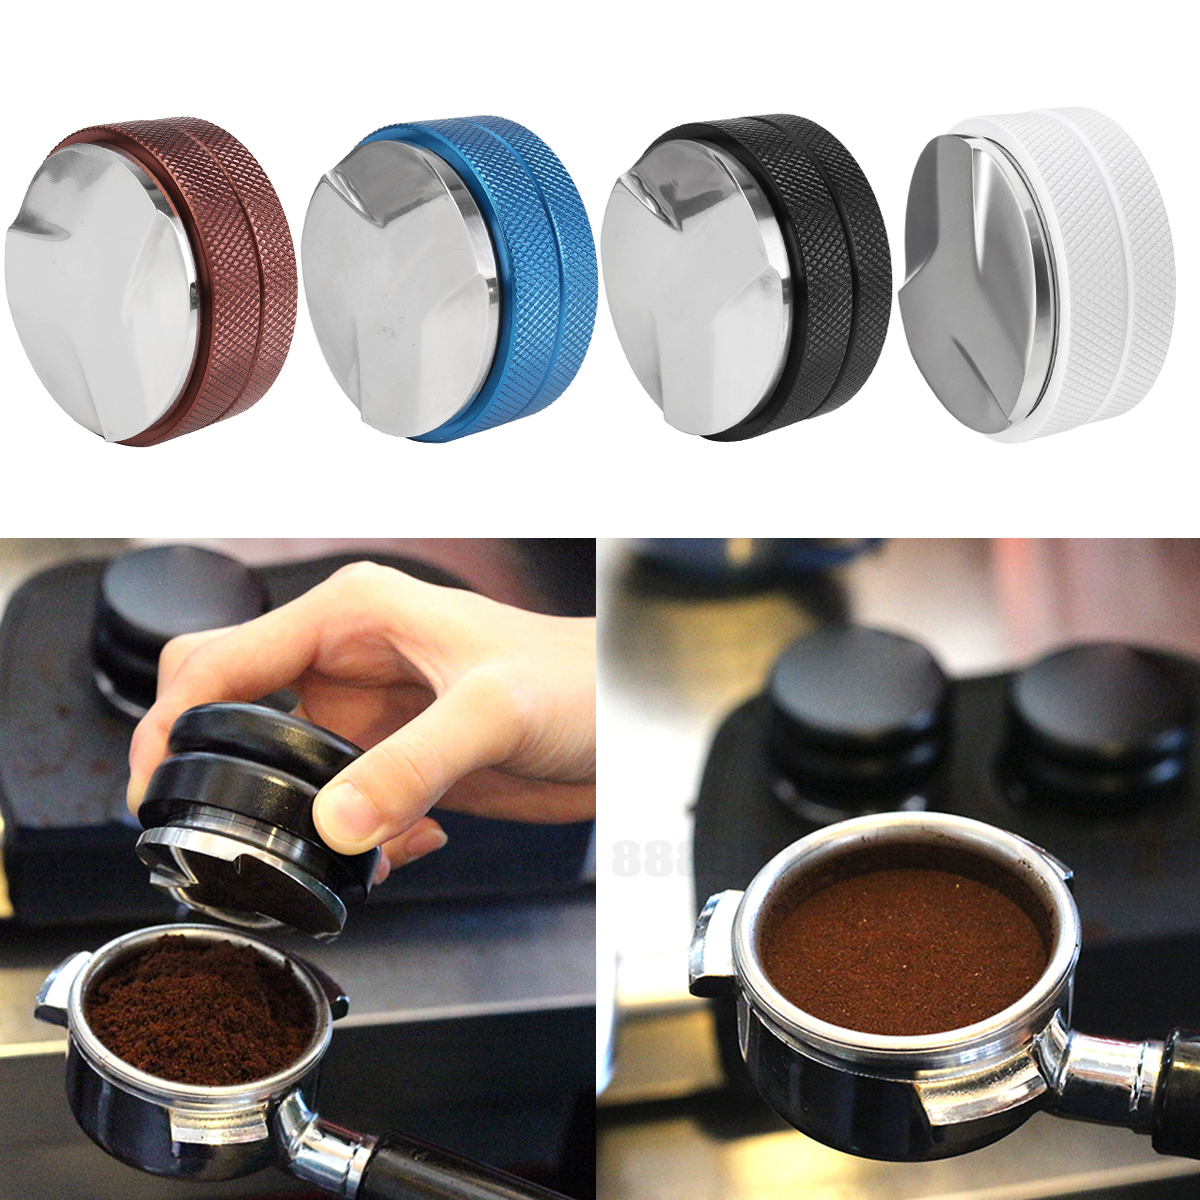 58mm Adjustable Coffee Bean Tamper Stainless Steel coffeemachine Base Three Angled Slopes Cafe